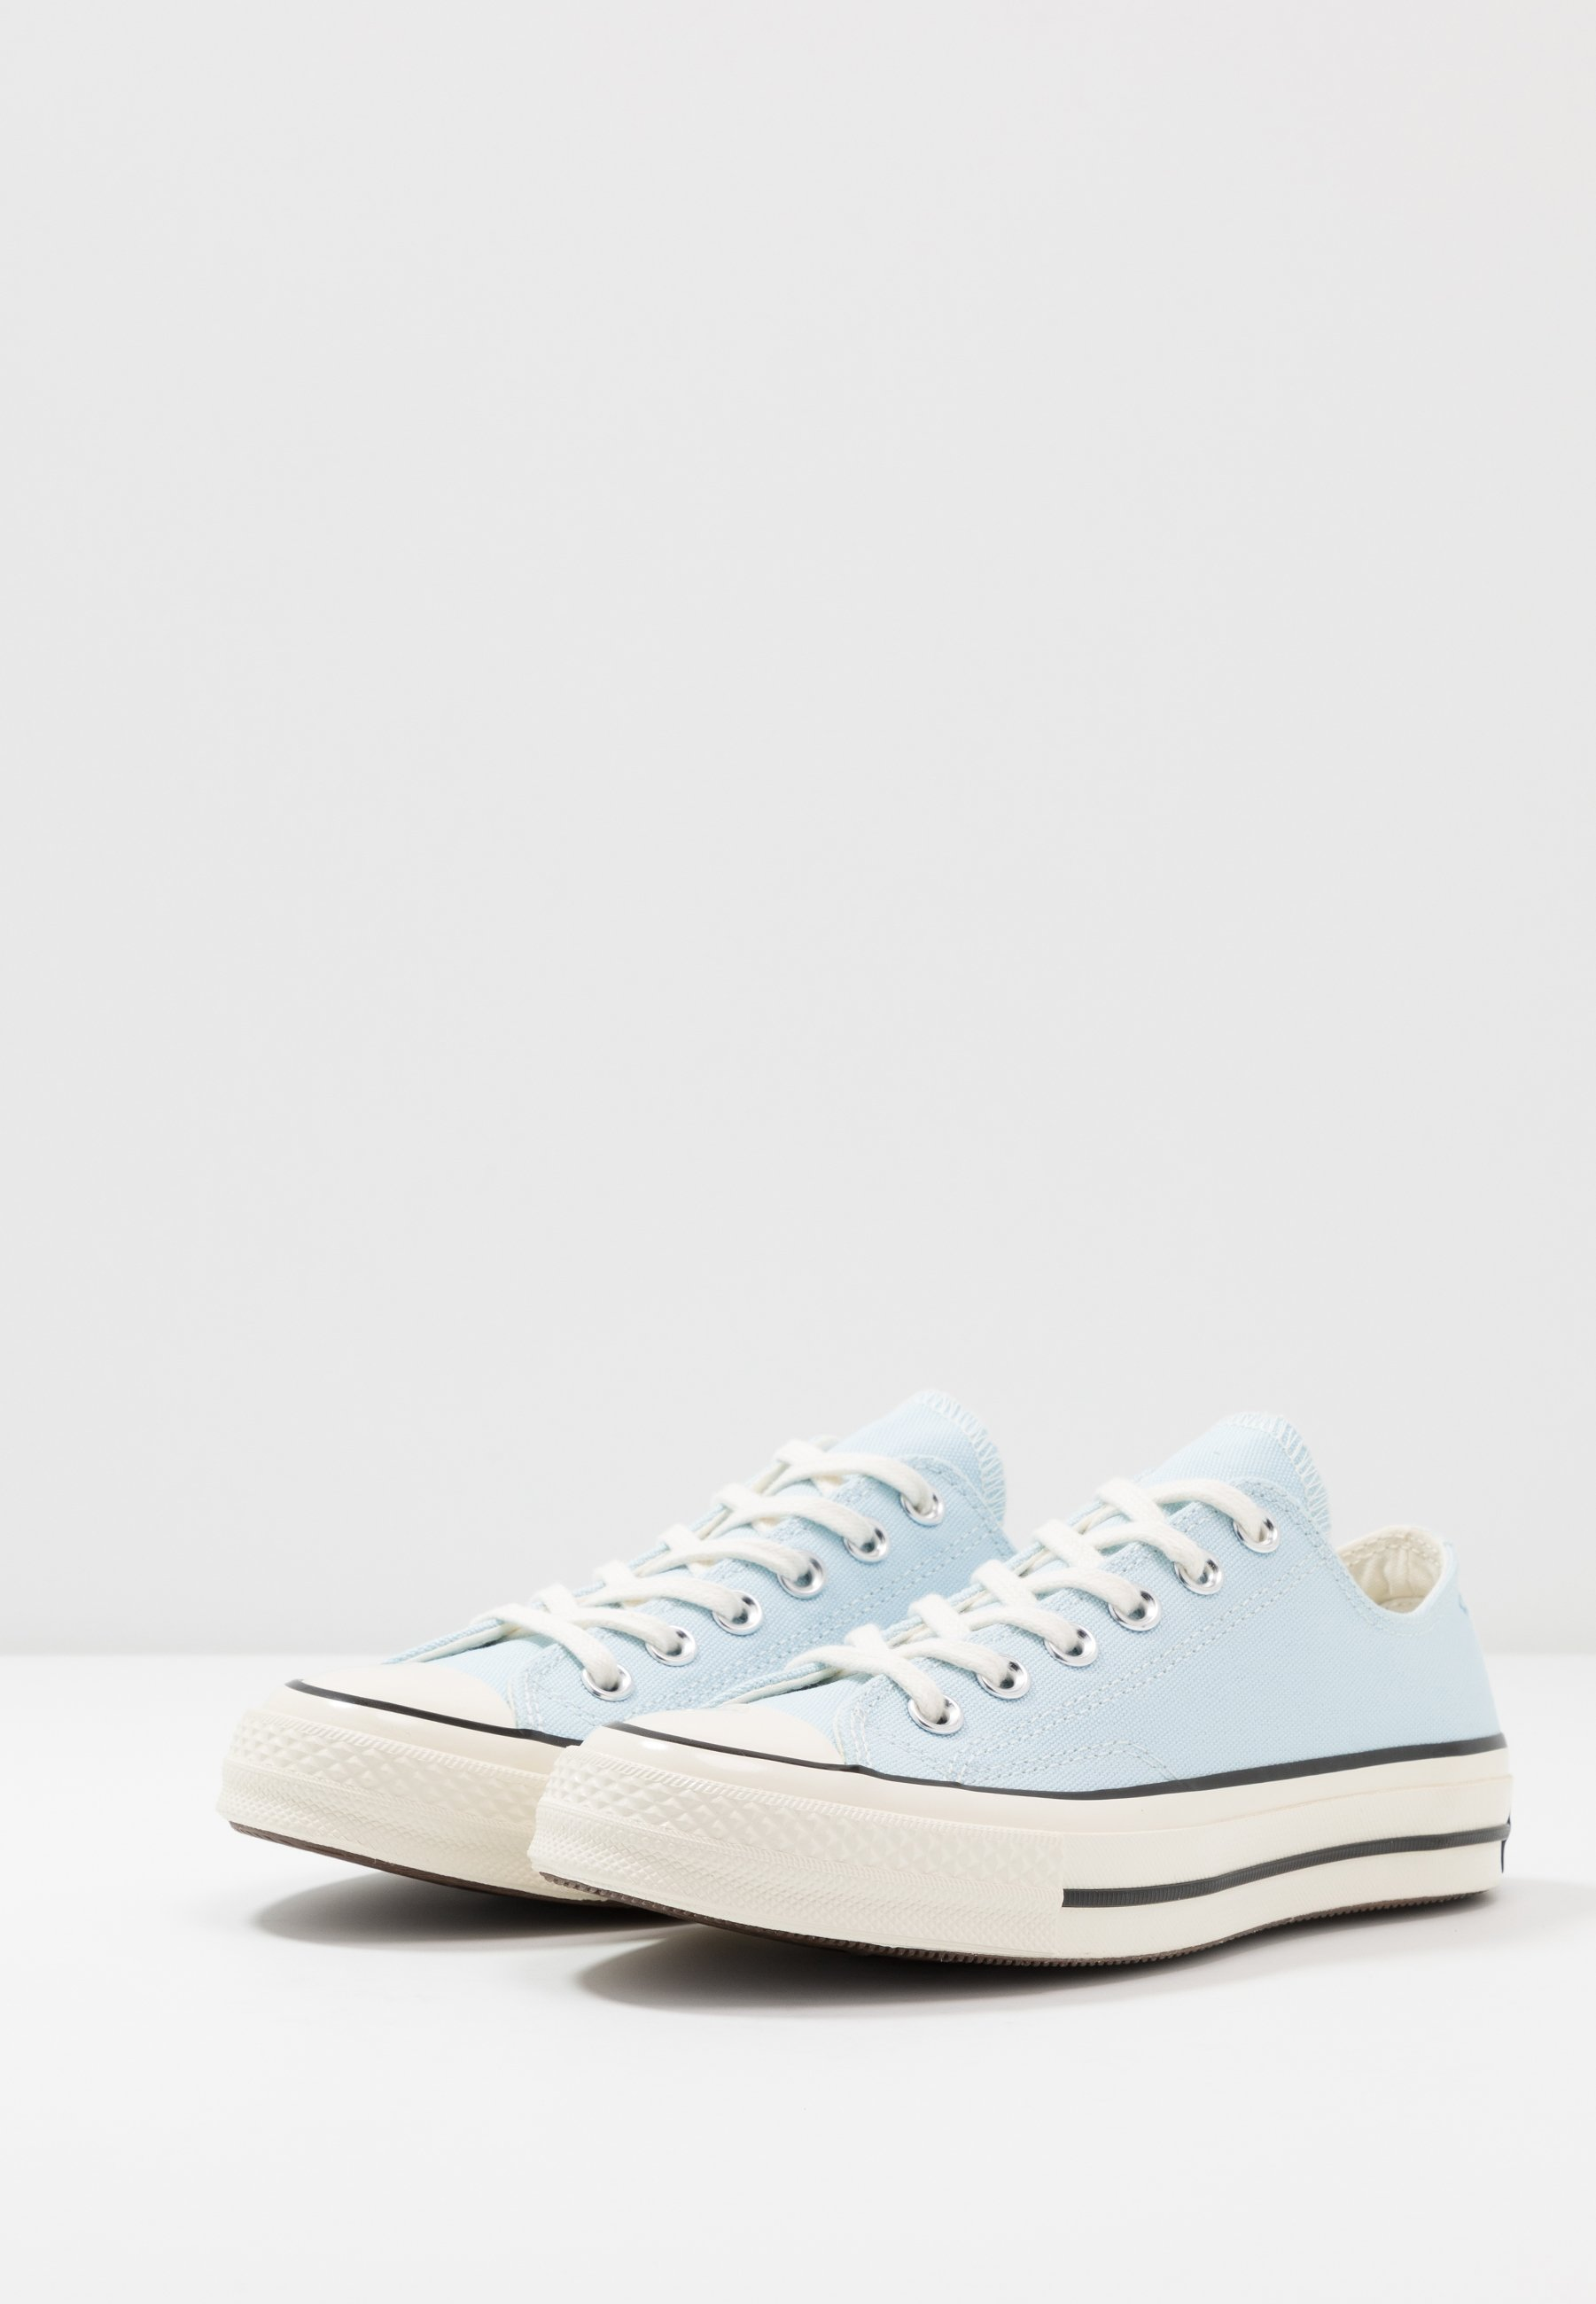 Converse Chuck Taylor All Star 70 - Baskets Basses Agate Blue/black/egret